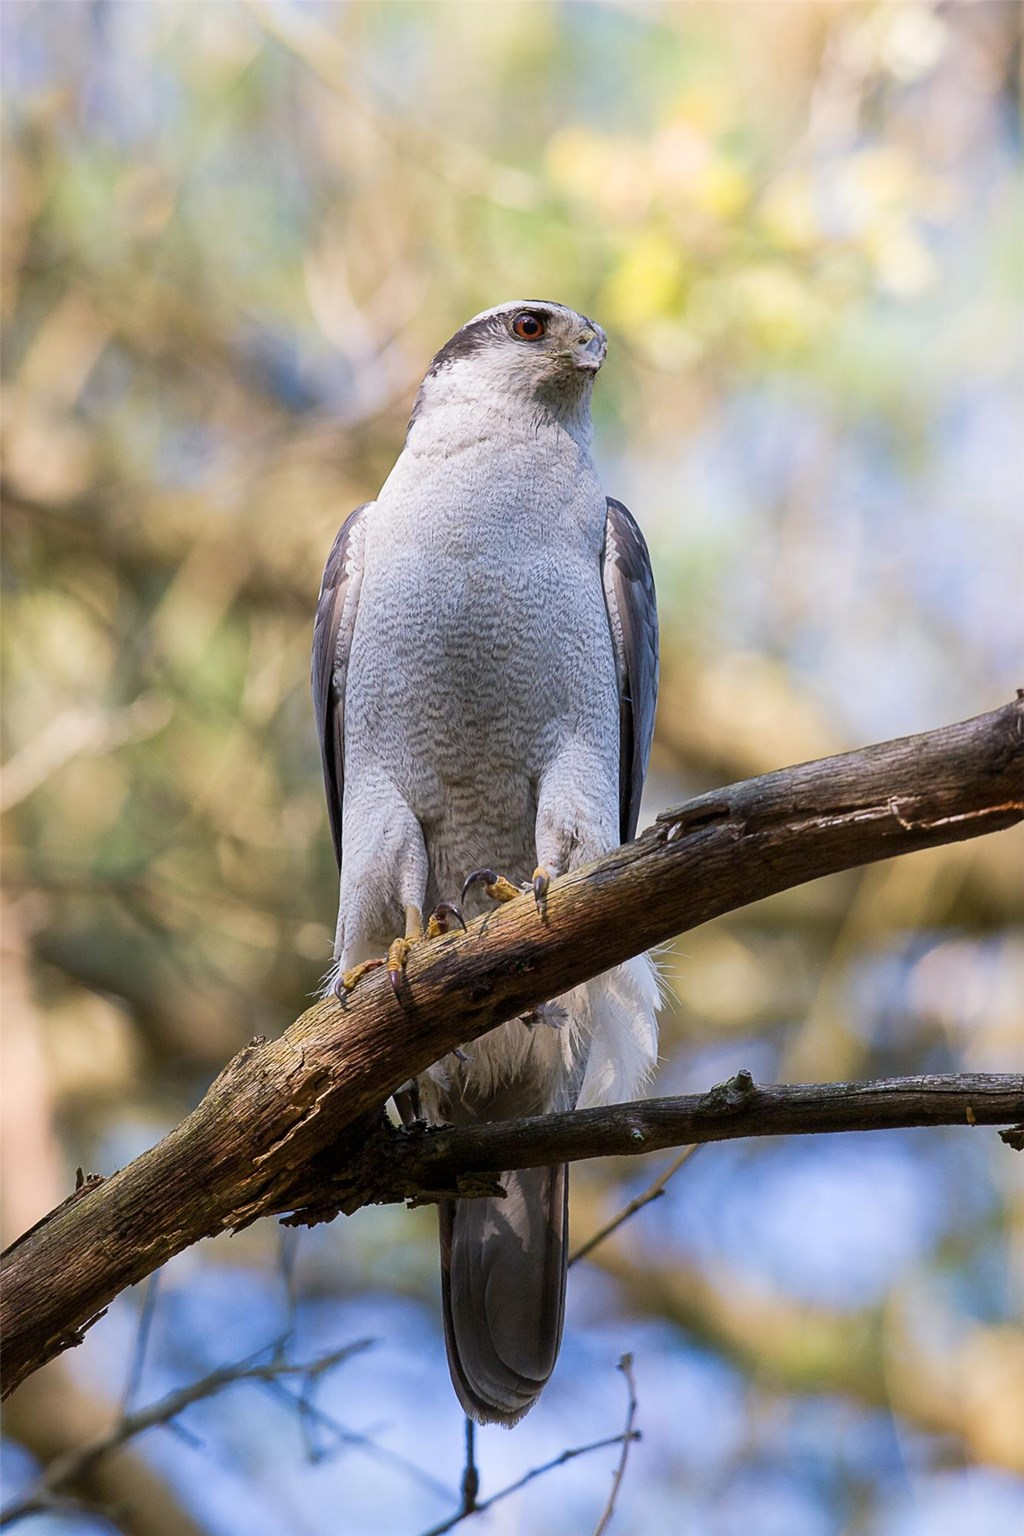 Northern goshawk perched on a tree branch